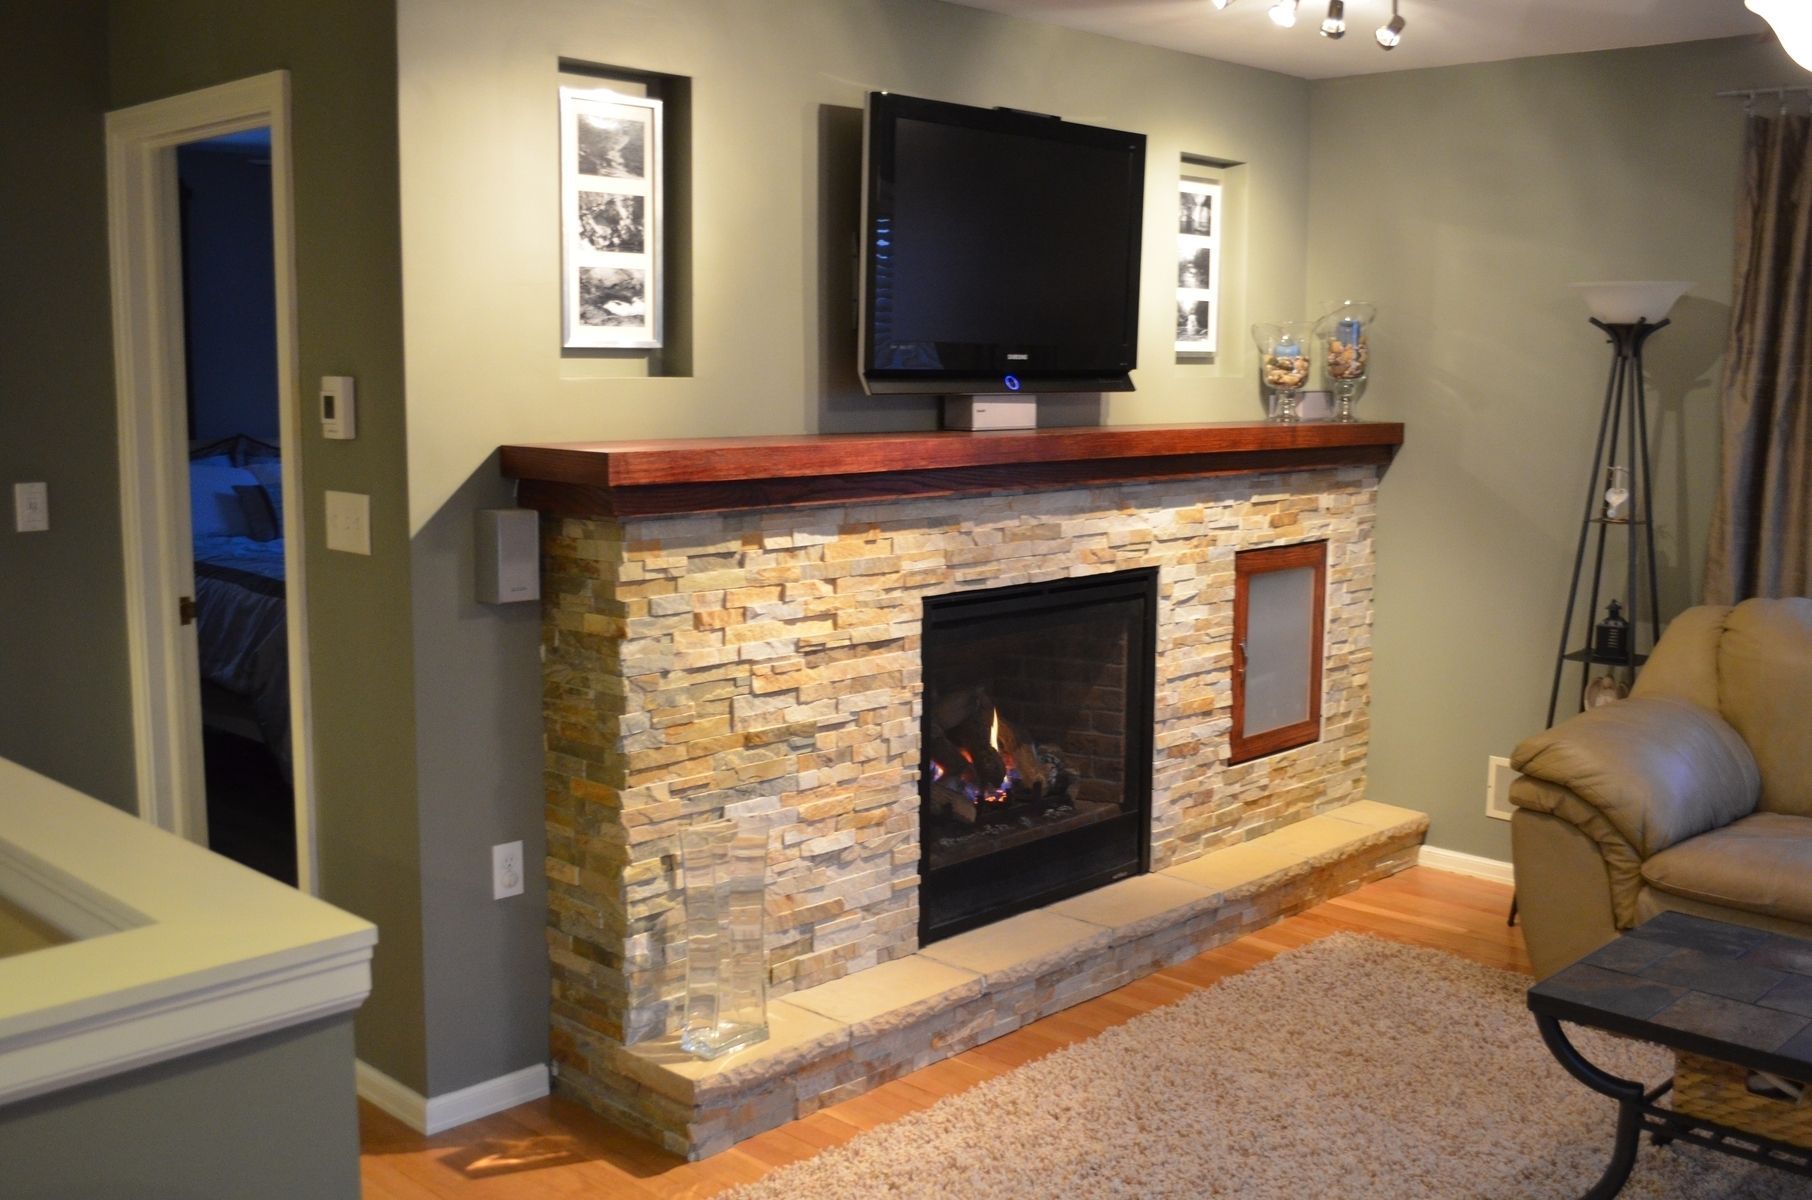 I designed and built this custom fireplace with entertainment center.  There are custom nooks for pictures above the mantel along with built in media …